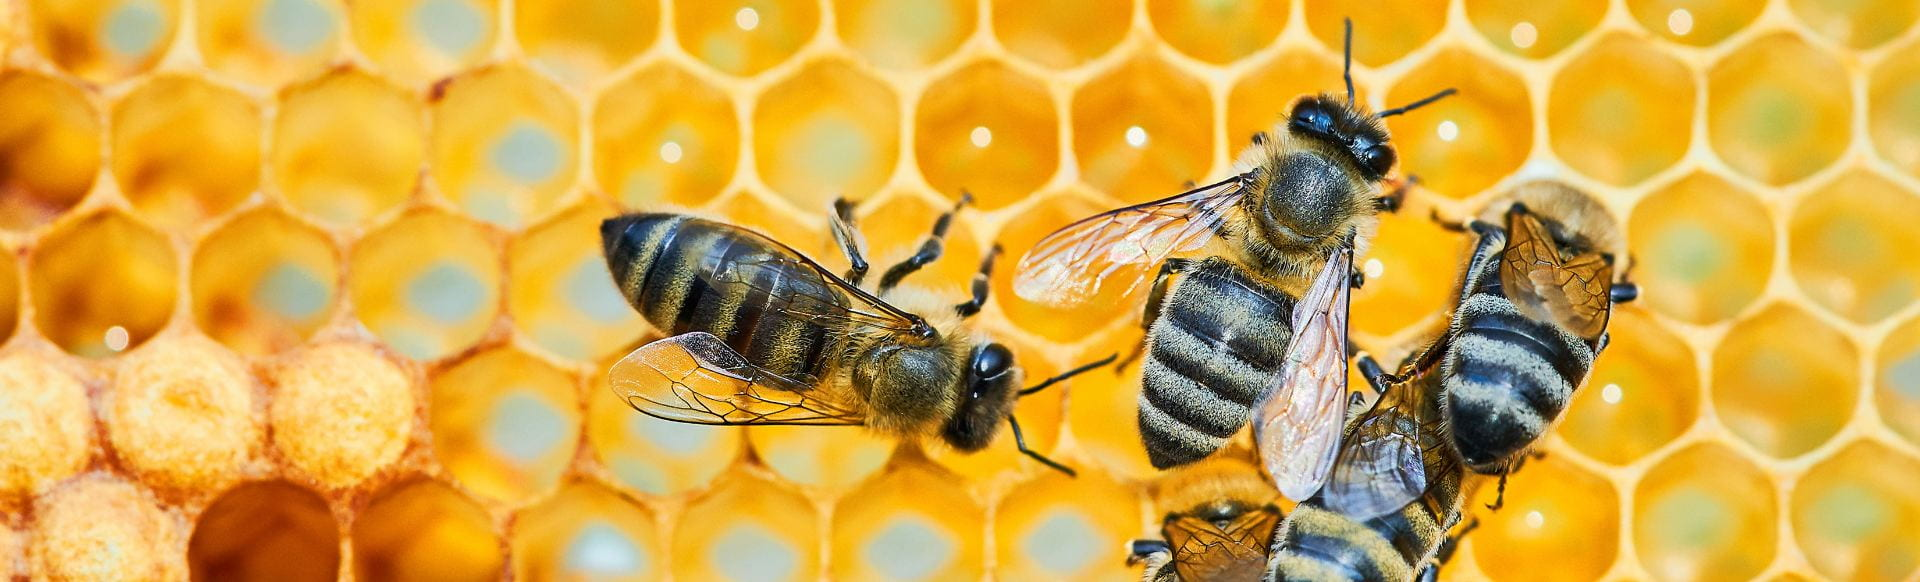 Macro Photo Of A Bee Hive On A Honeycomb With Copyspace. Bees Pr